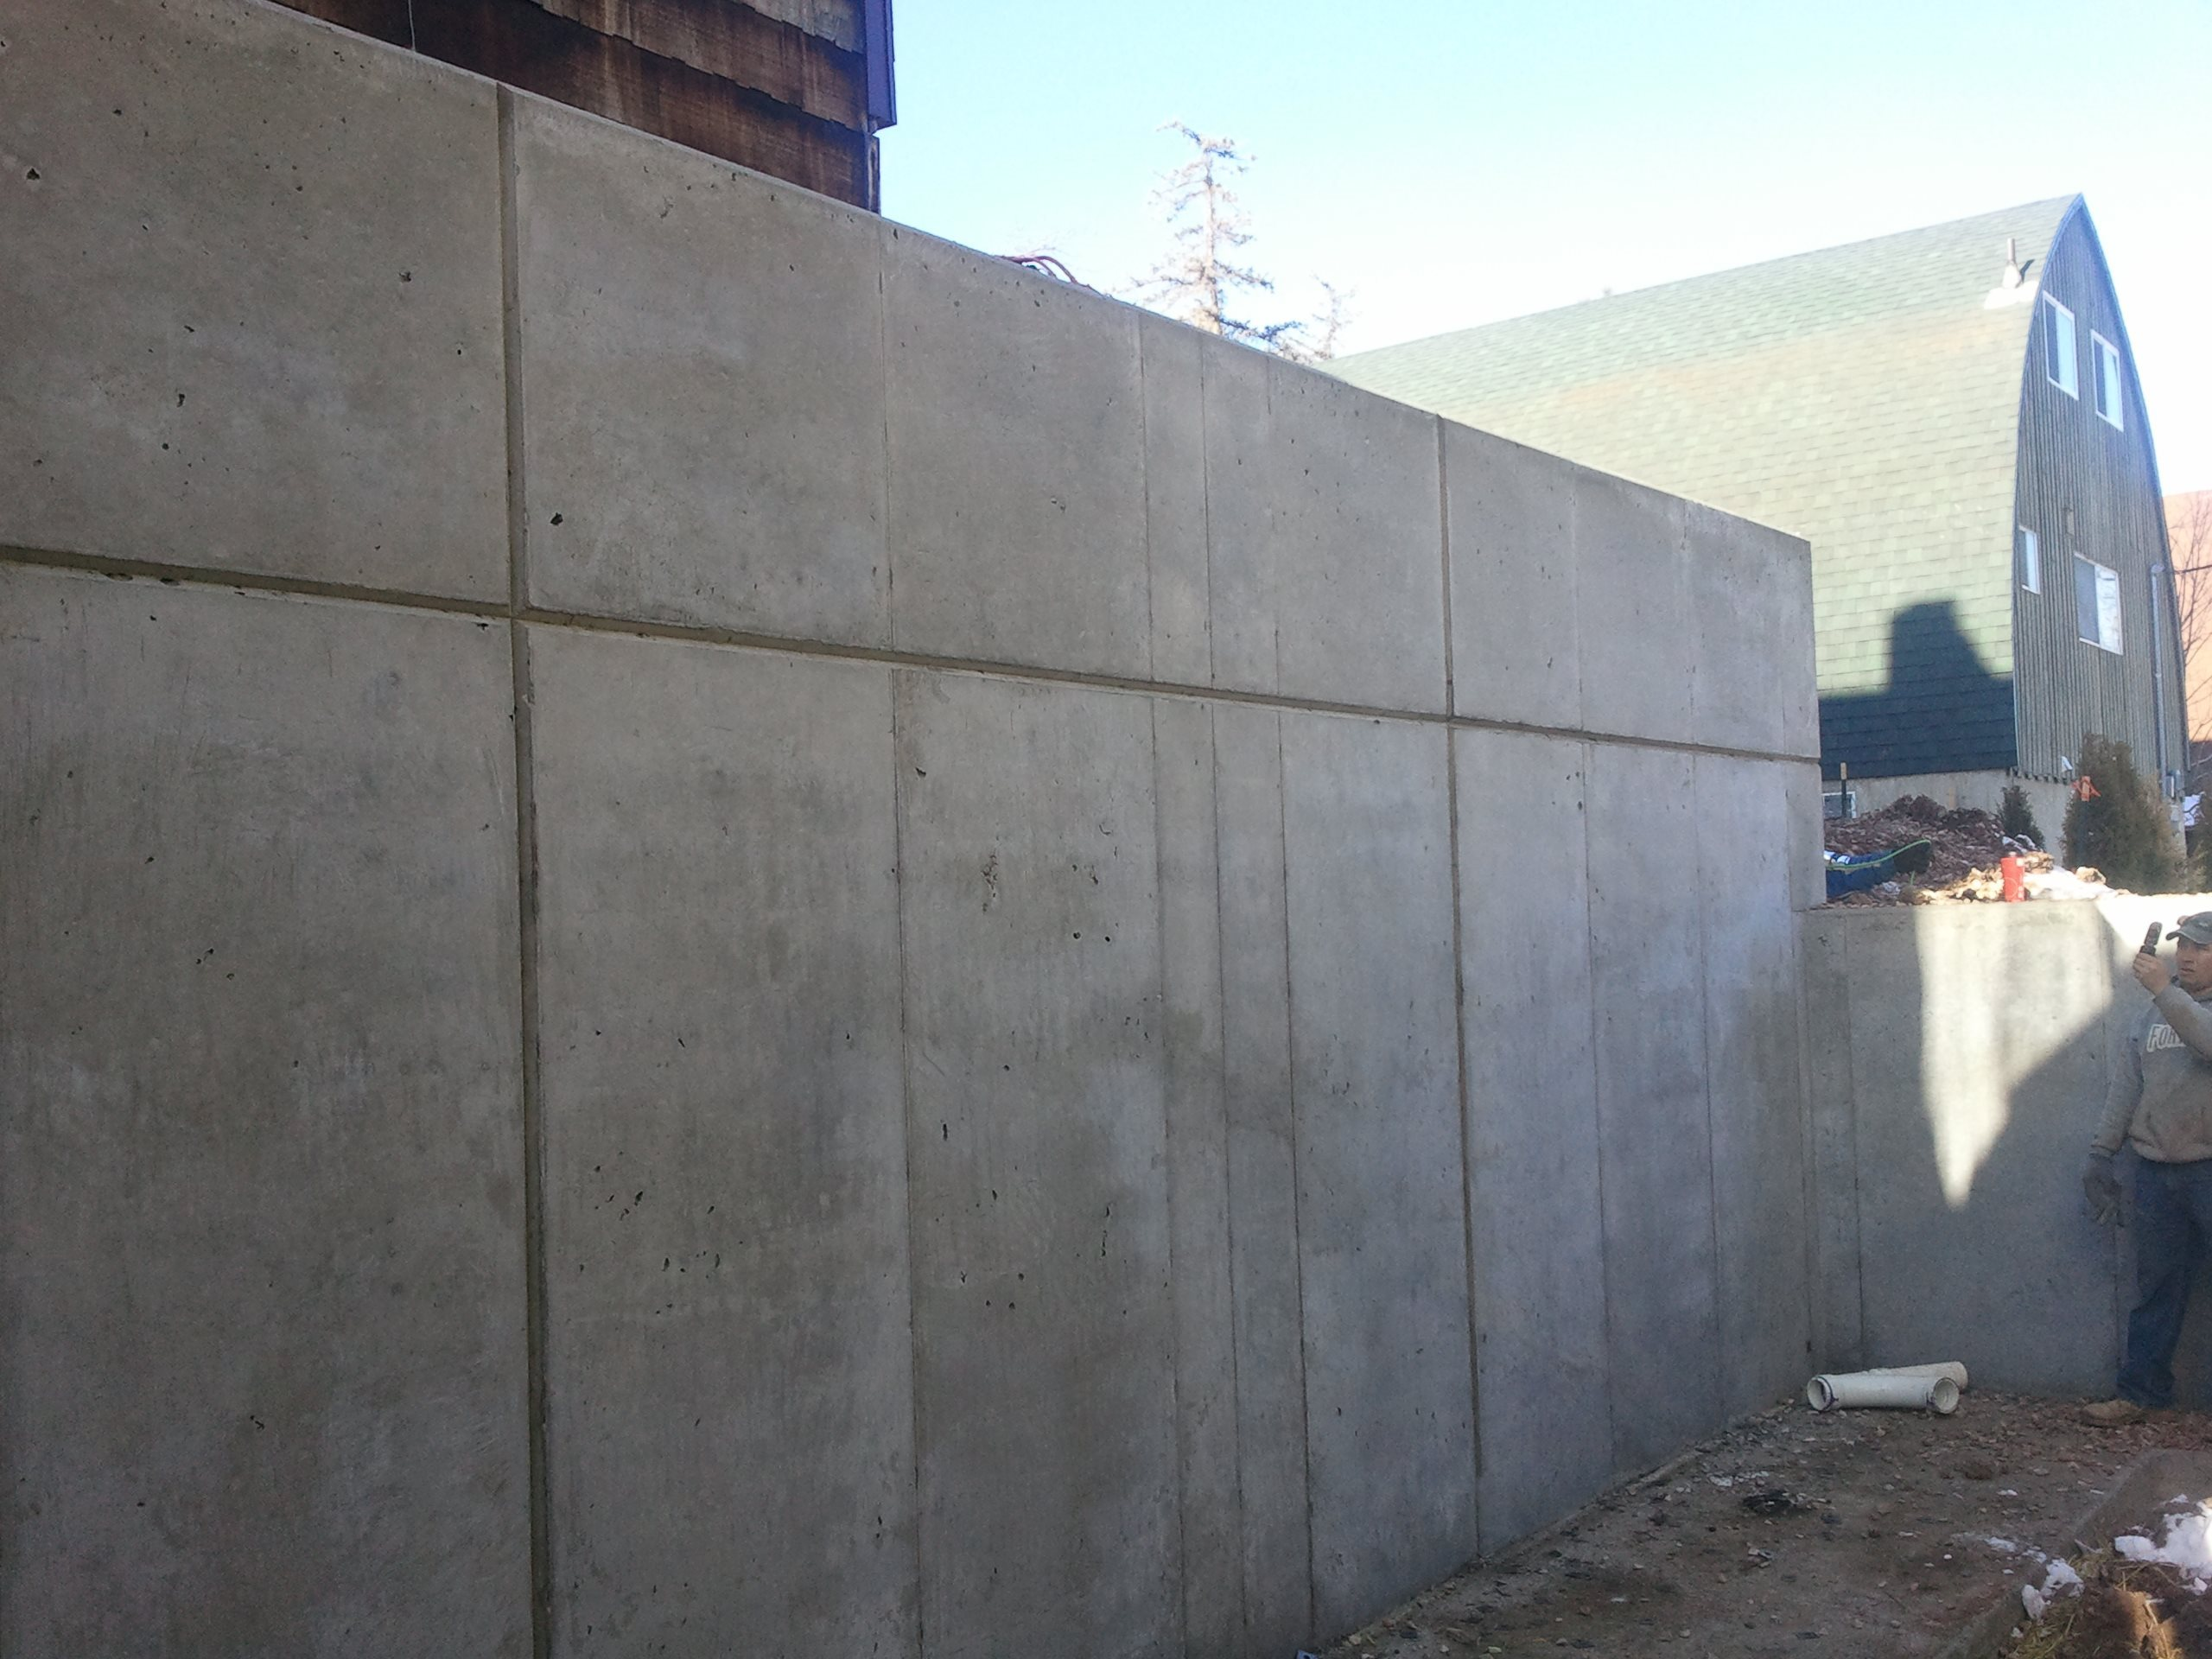 Architectural walls solid concrete walls for Precast concrete basement walls cost